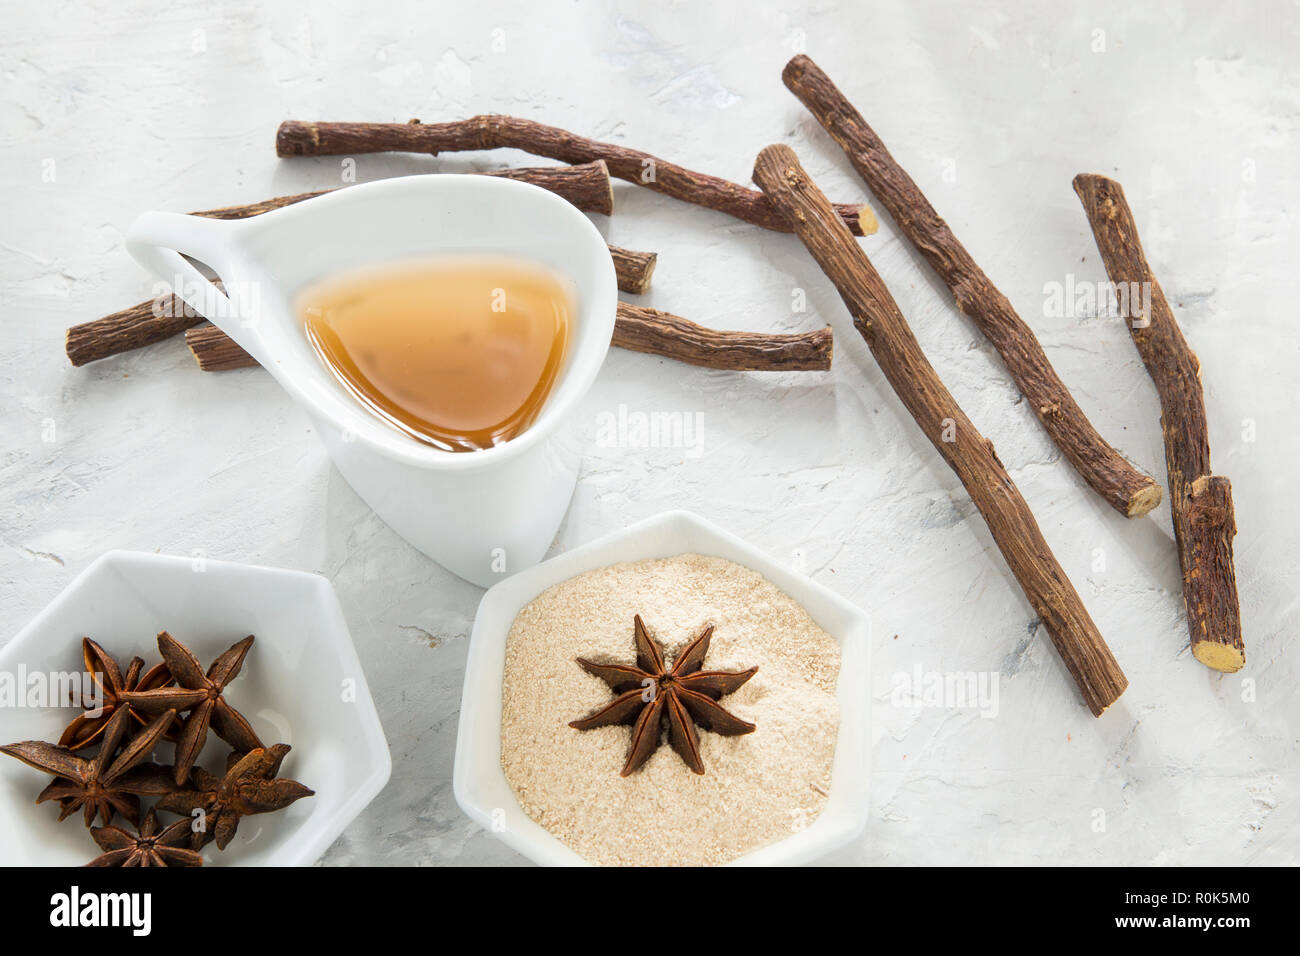 anise tea and liquorice roots on the table - Stock Image